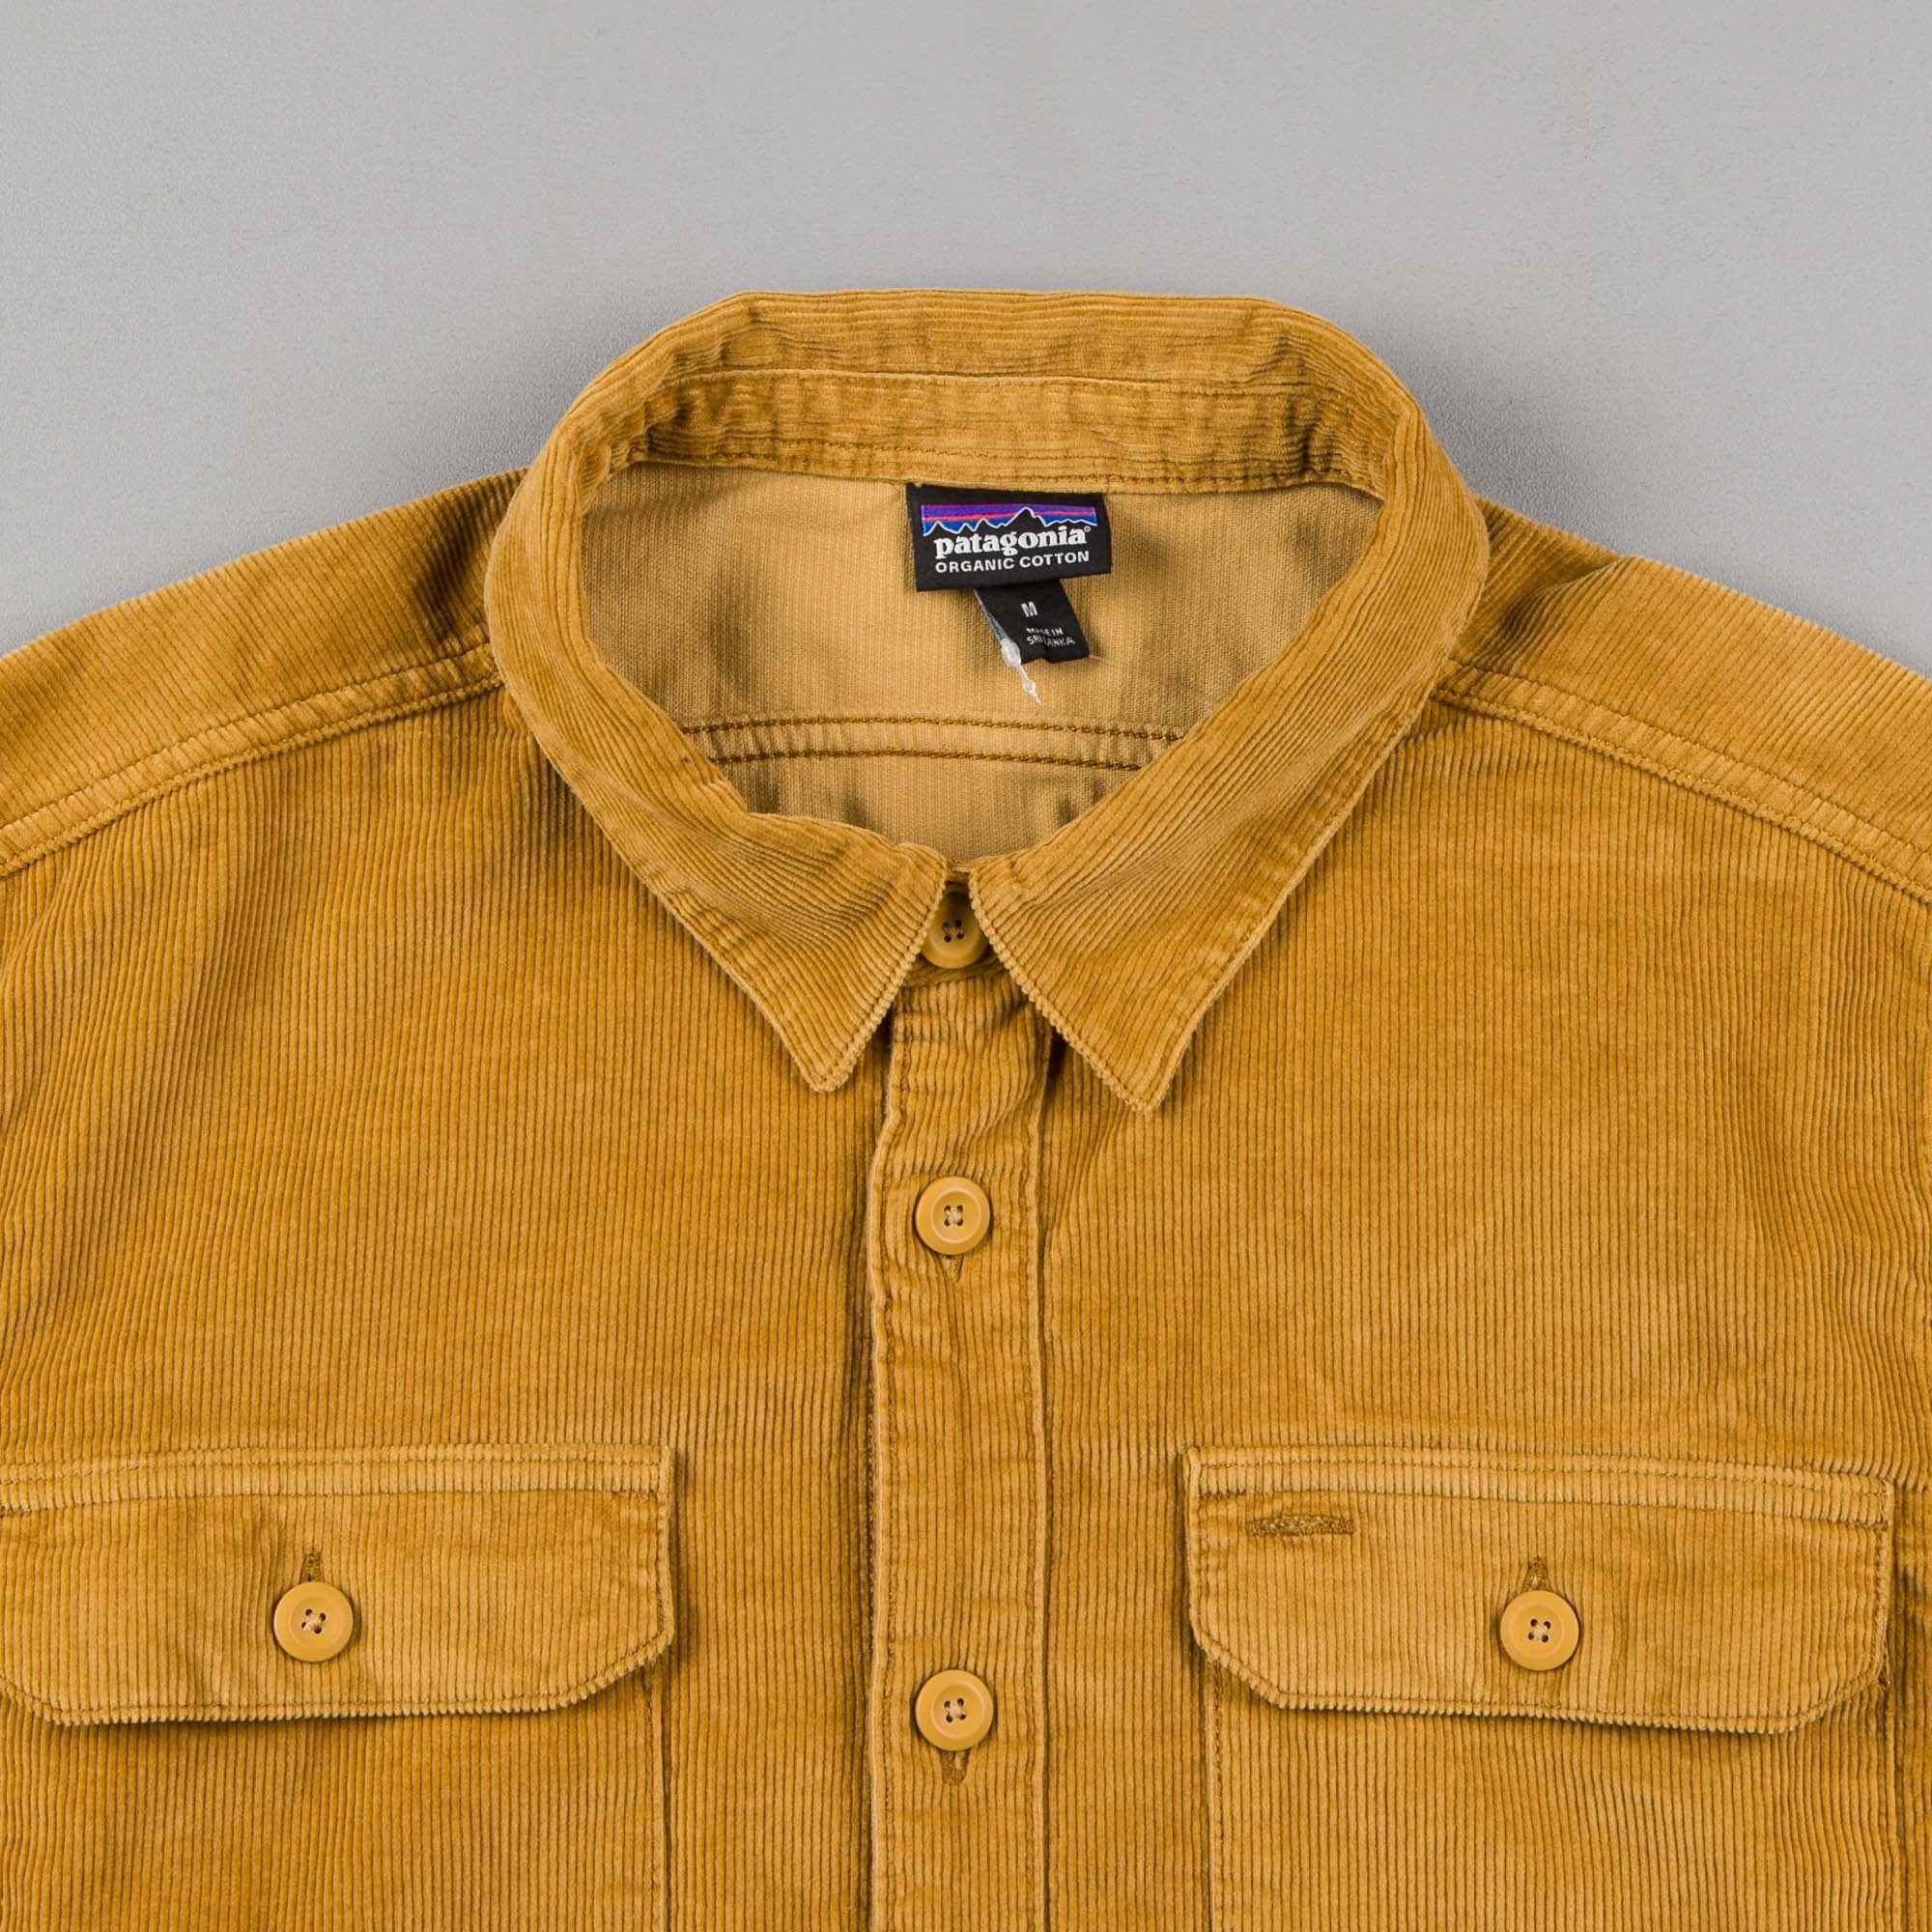 Patagonia Workwear Shirt - Oaks Brown